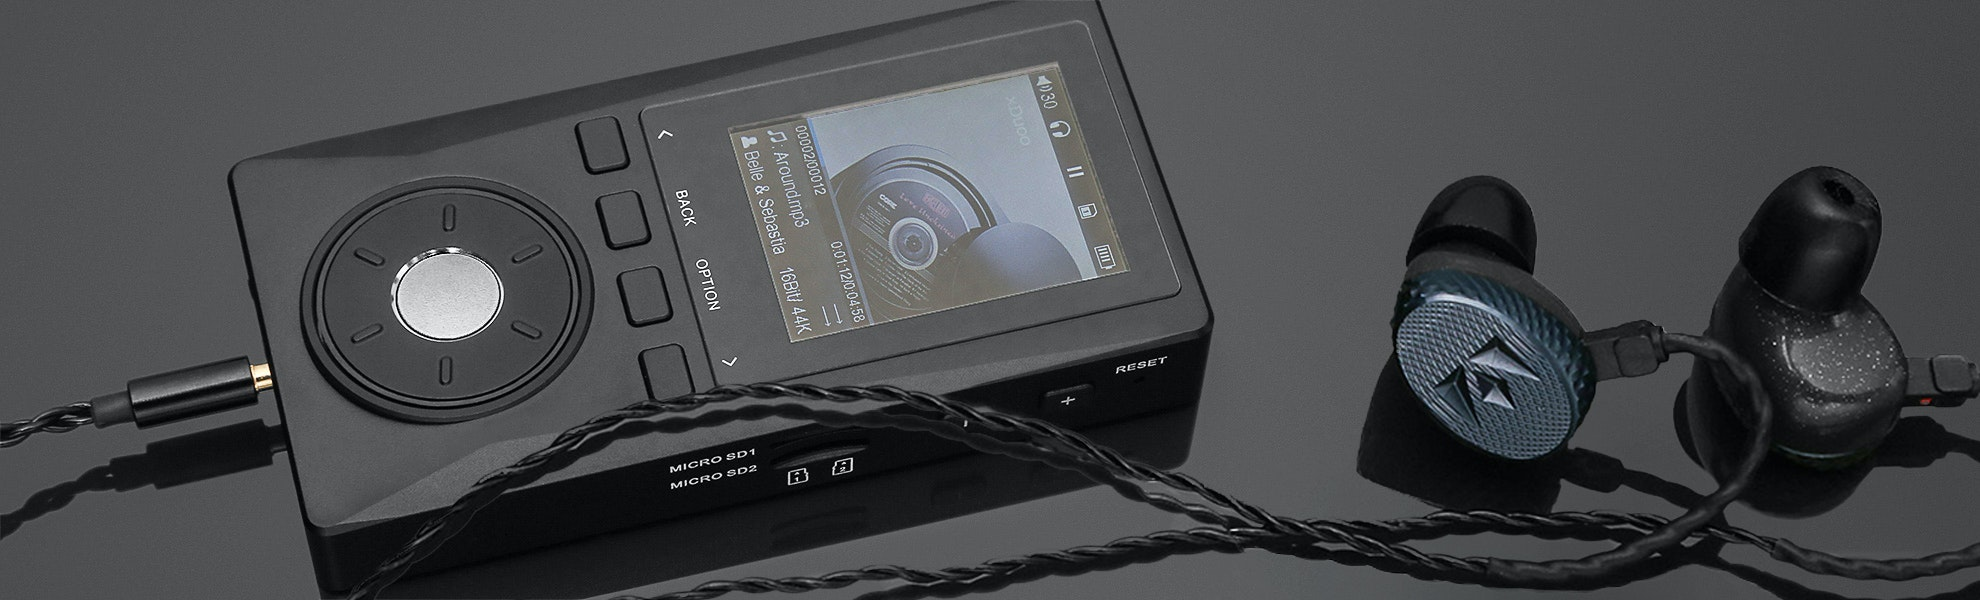 XDuoo X10 Digital Audio Player